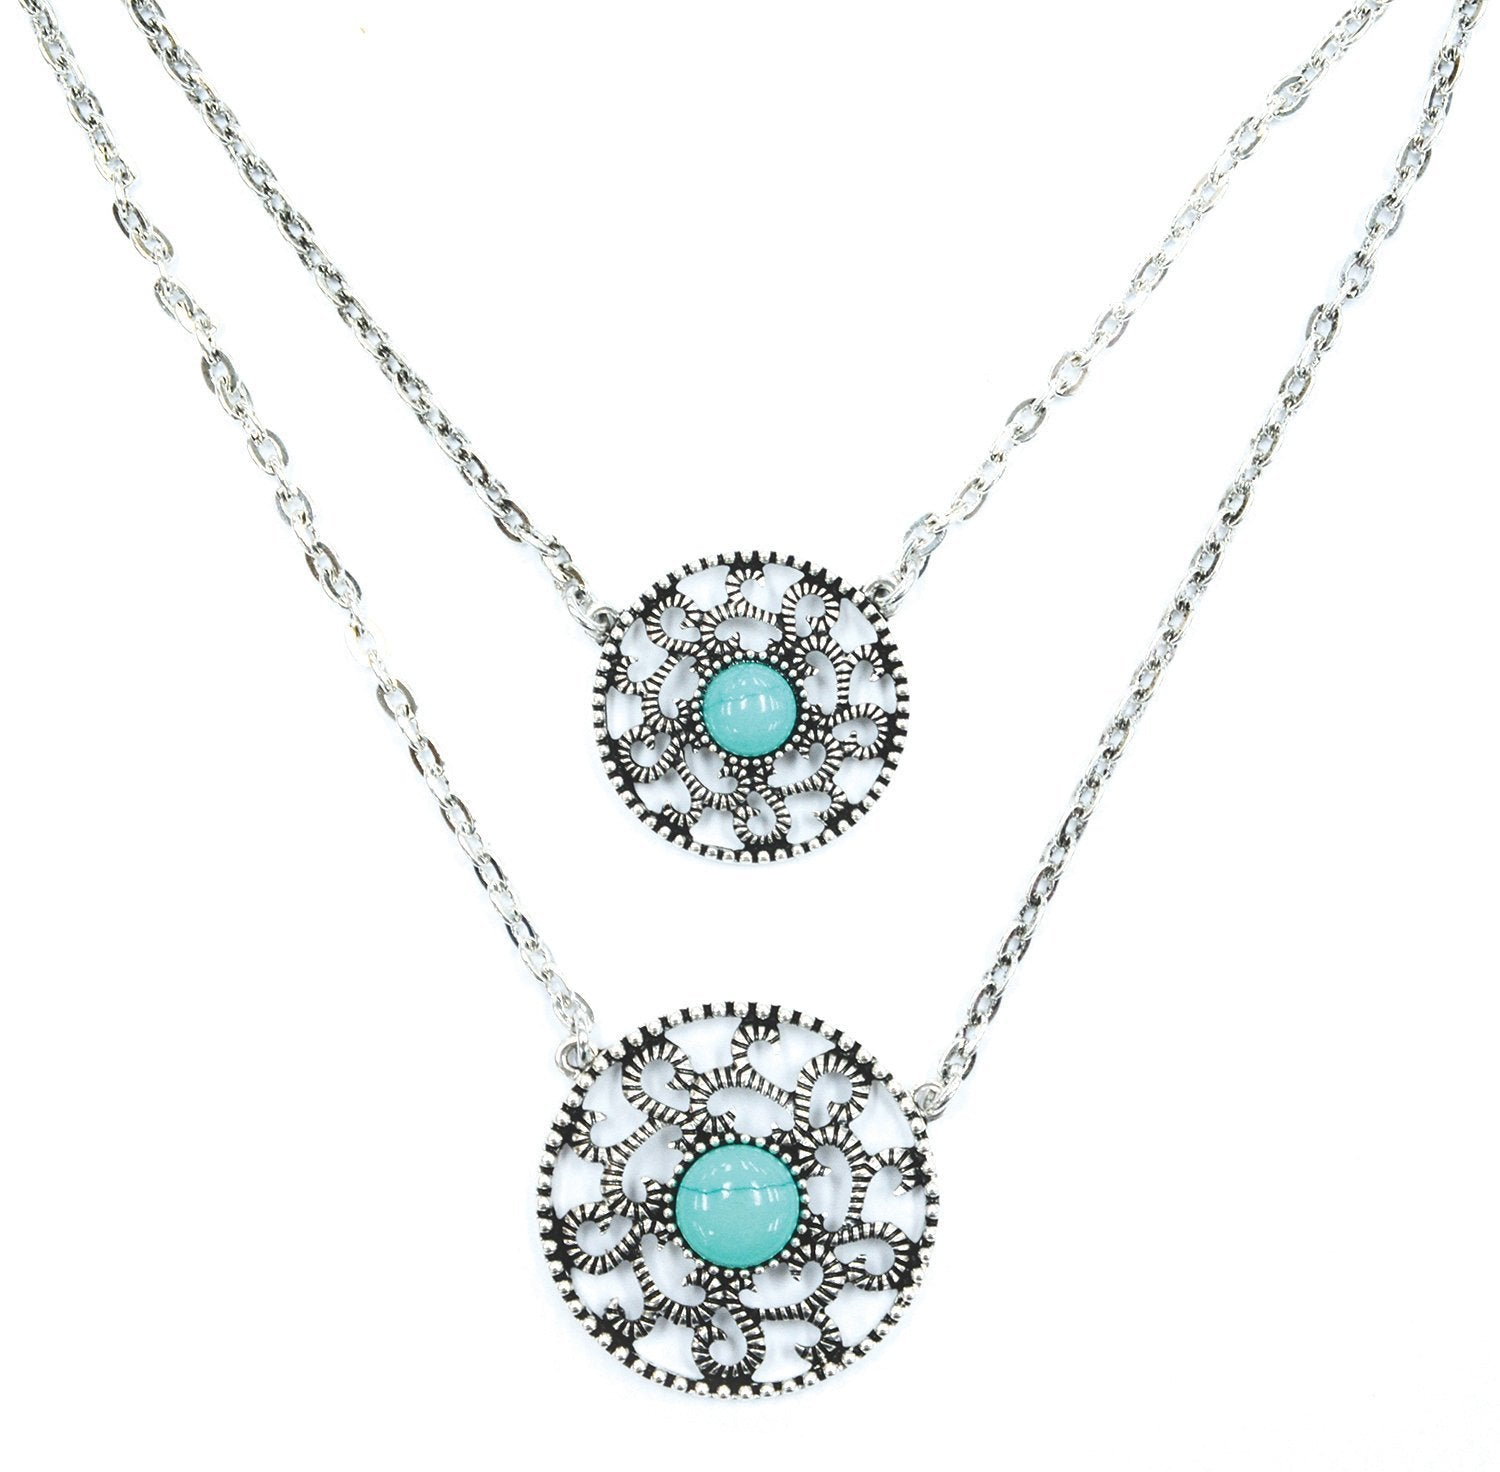 Pure Western Jewellery Talissa Necklace